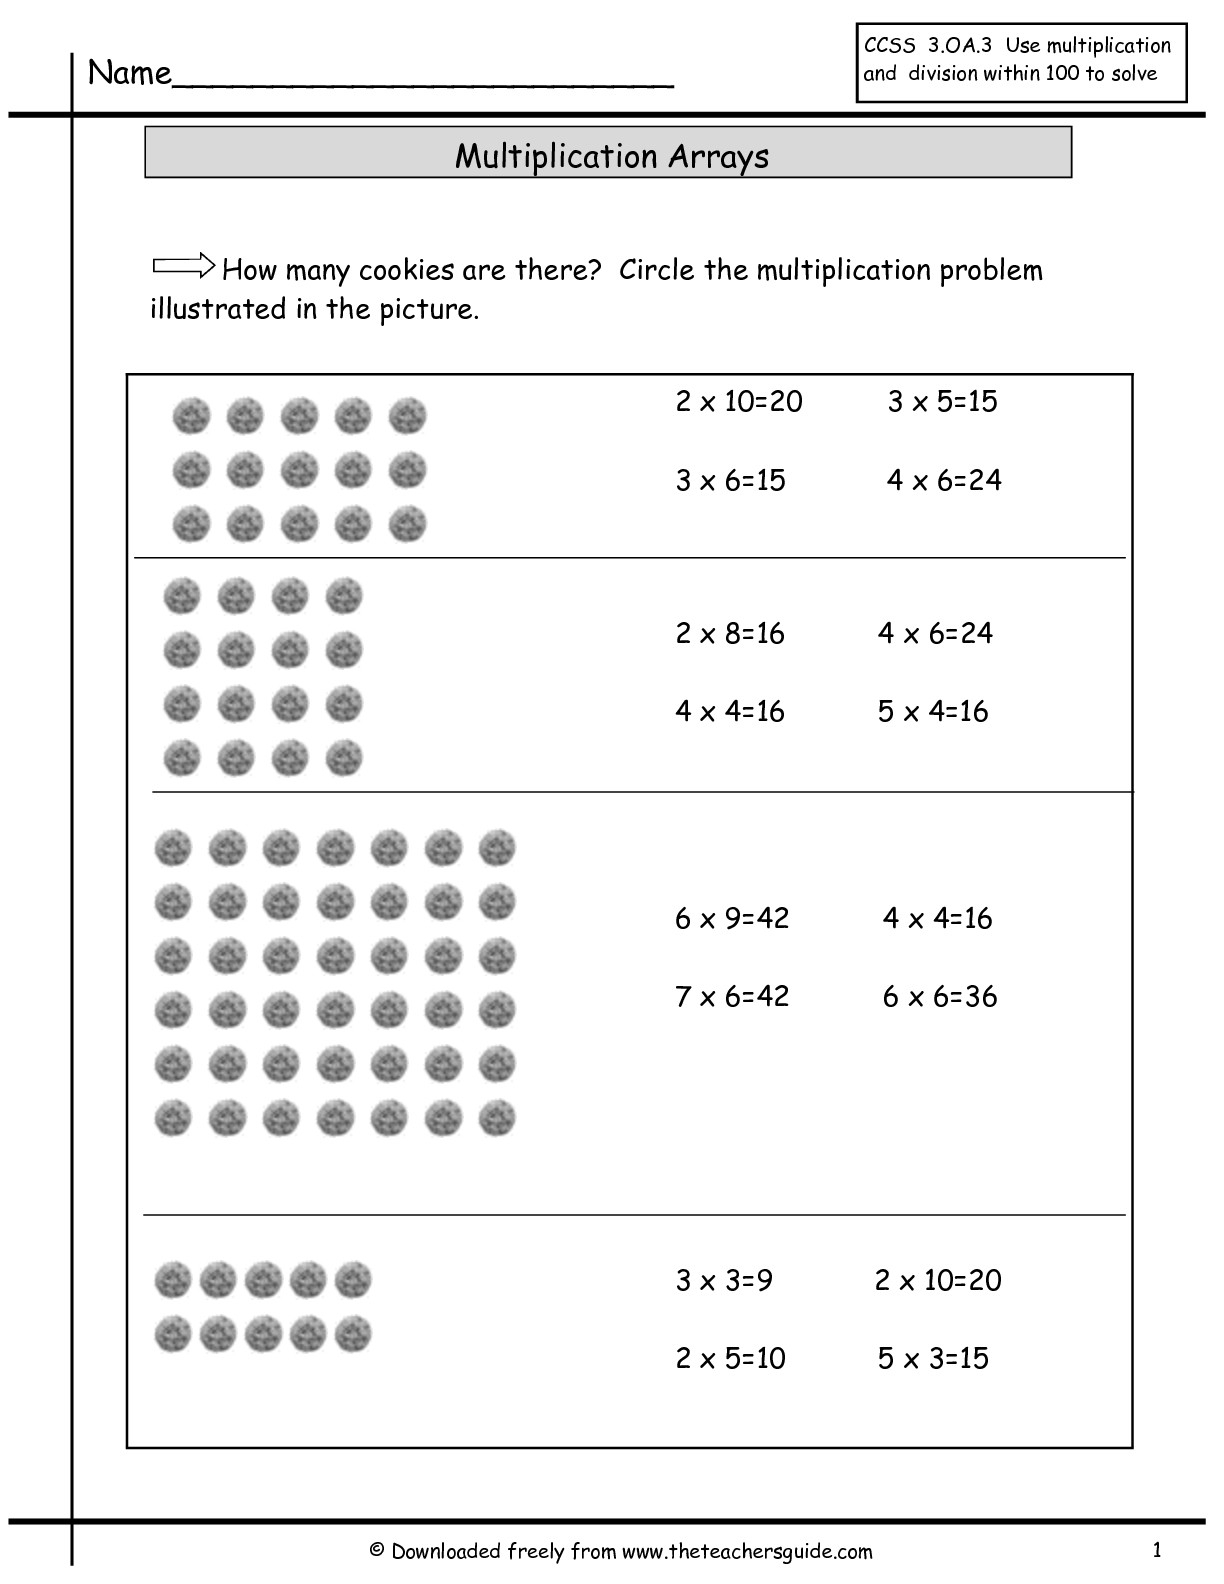 multiplication spreadsheet pertaining to multiplication array worksheets from the teacher 39 s. Black Bedroom Furniture Sets. Home Design Ideas